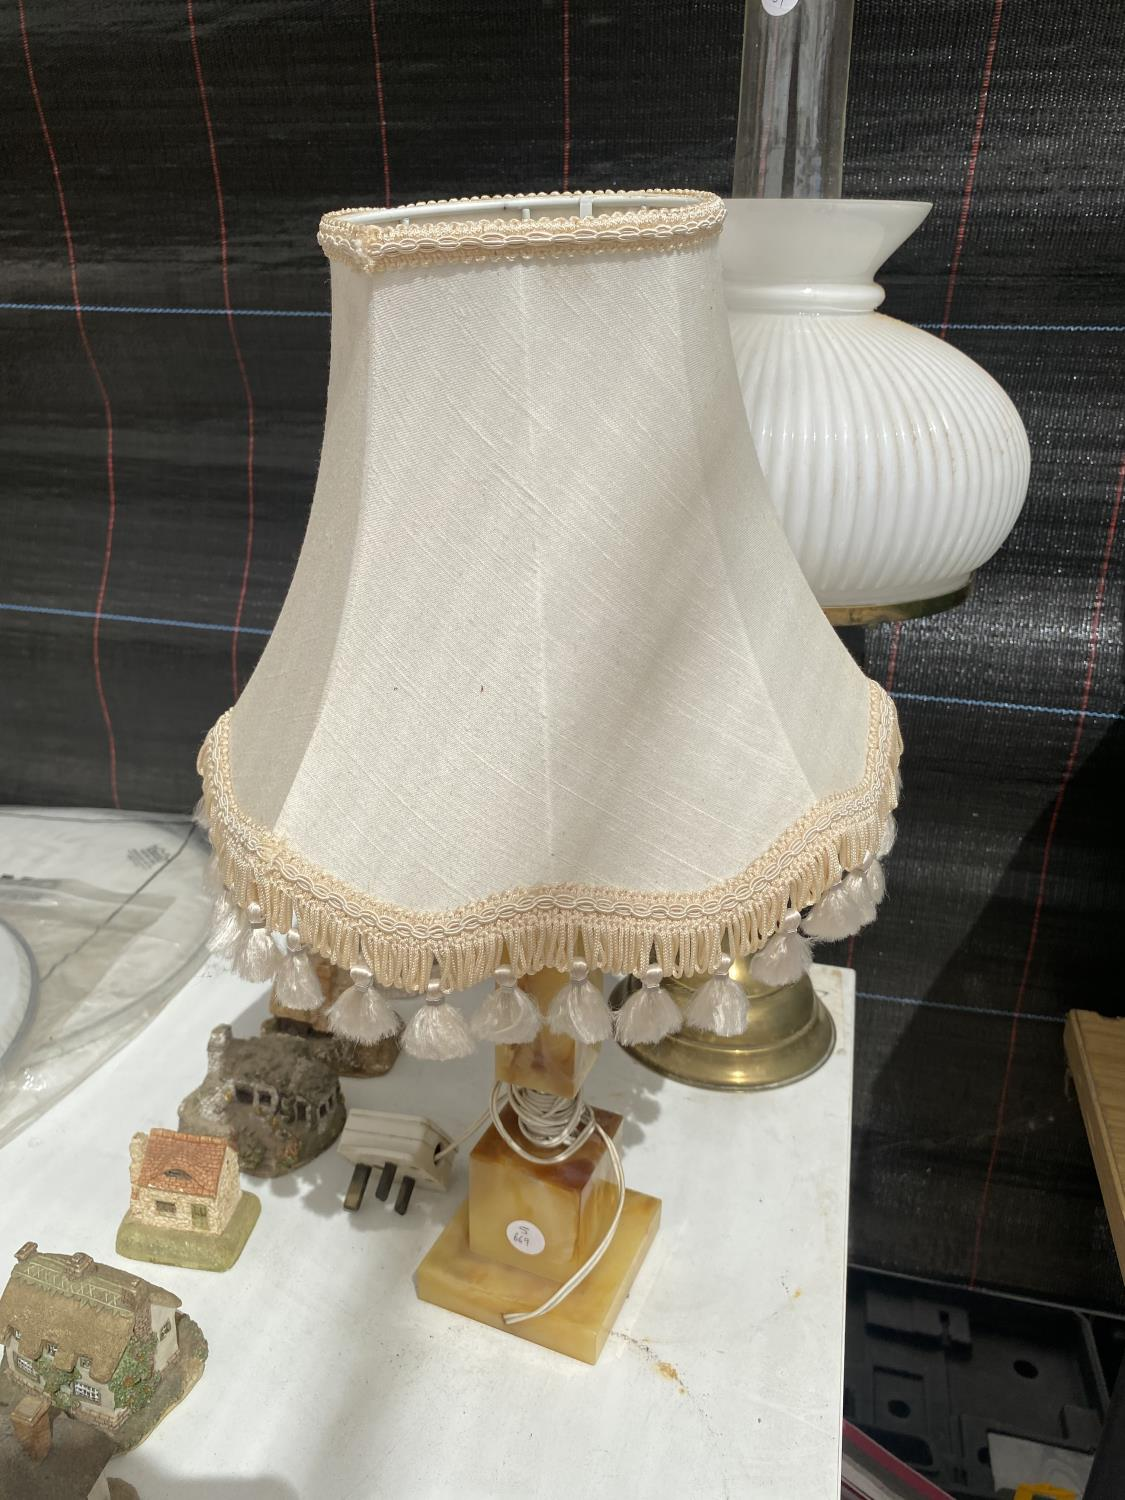 AN ASSORTMENT OF TABLE LAMPS TO INCLUDE A TIFFANY STYLE LAMP AND AN OIL LAMP ETC - Image 3 of 4